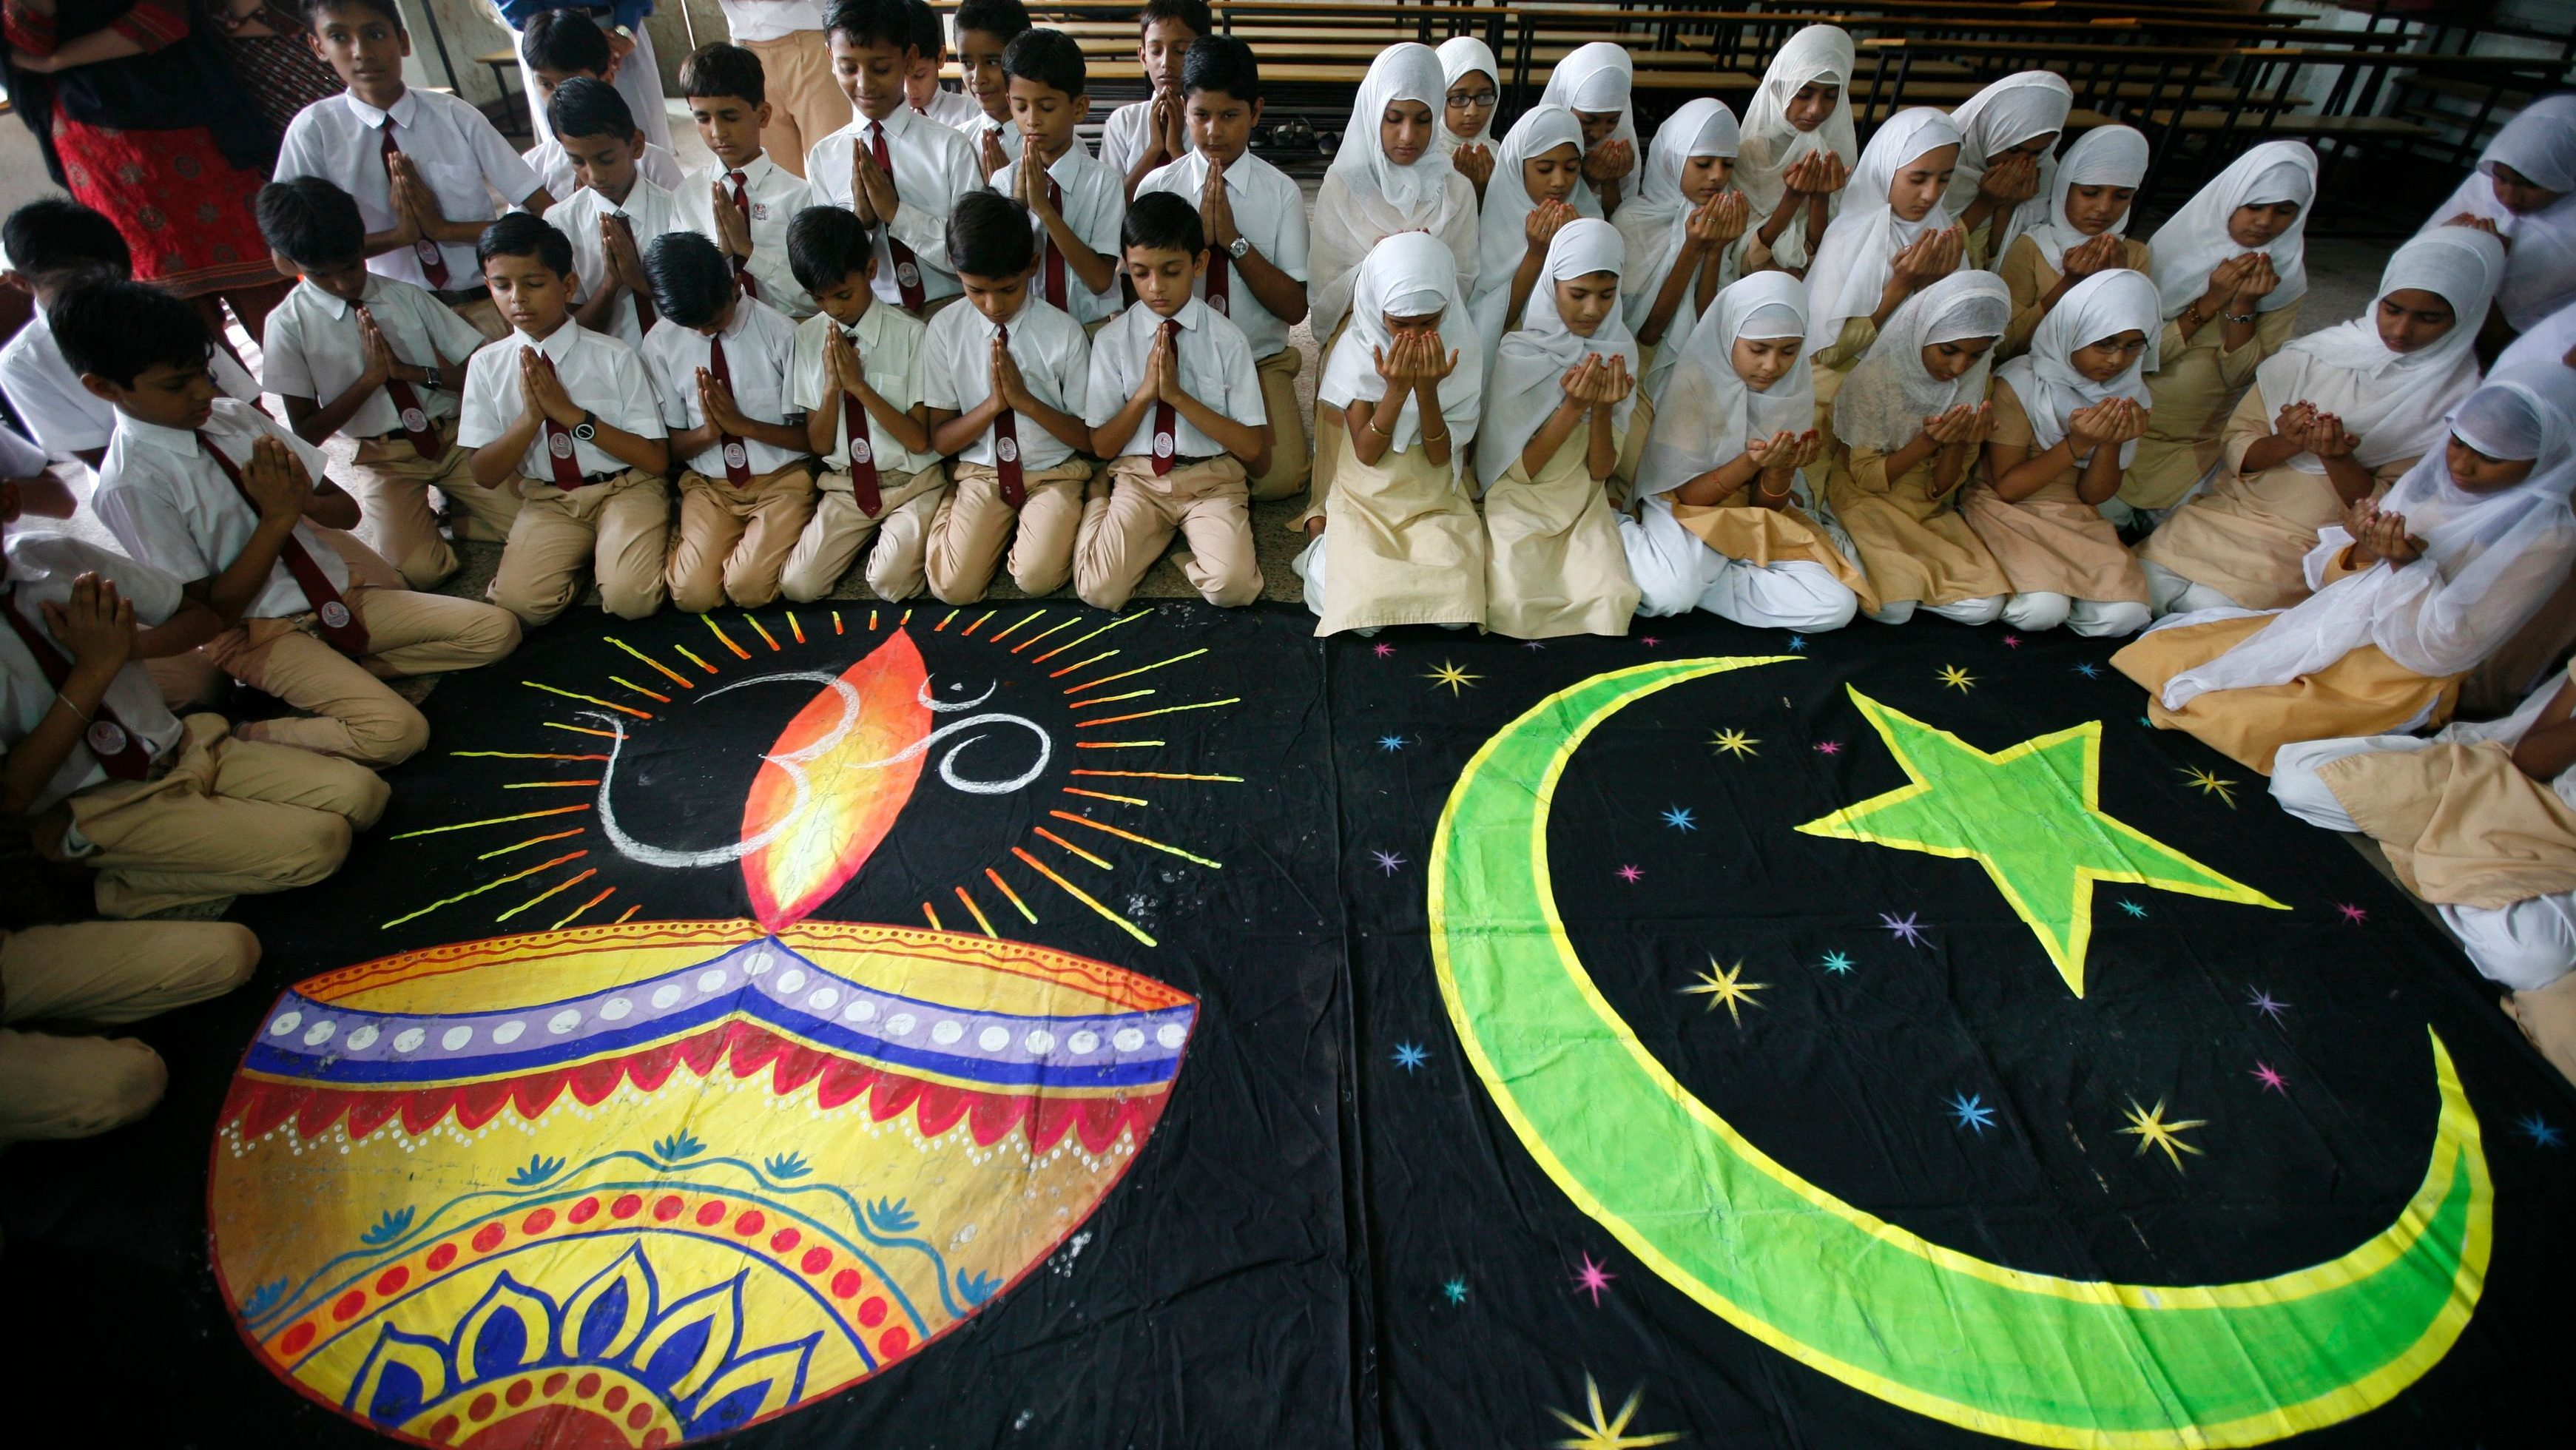 Hindu and Muslim school children offer prayers for peace inside their school in Ahmedabad on September 23, 2010.